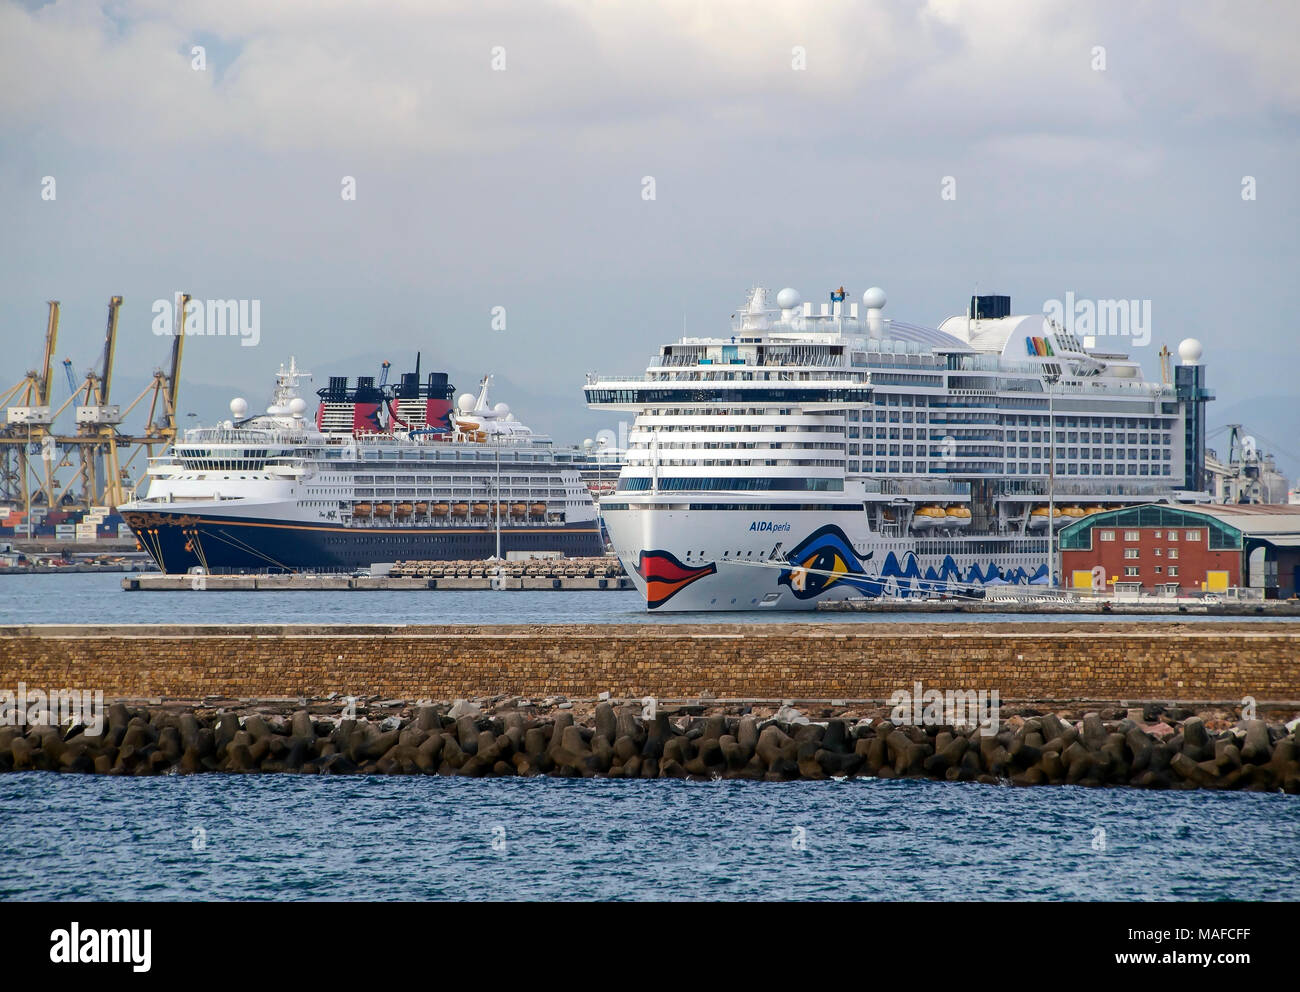 Cruise ship Aida Perla moored in Livorno Harbour Livorno Italy Europe with Disney Magic behind Stock Photo